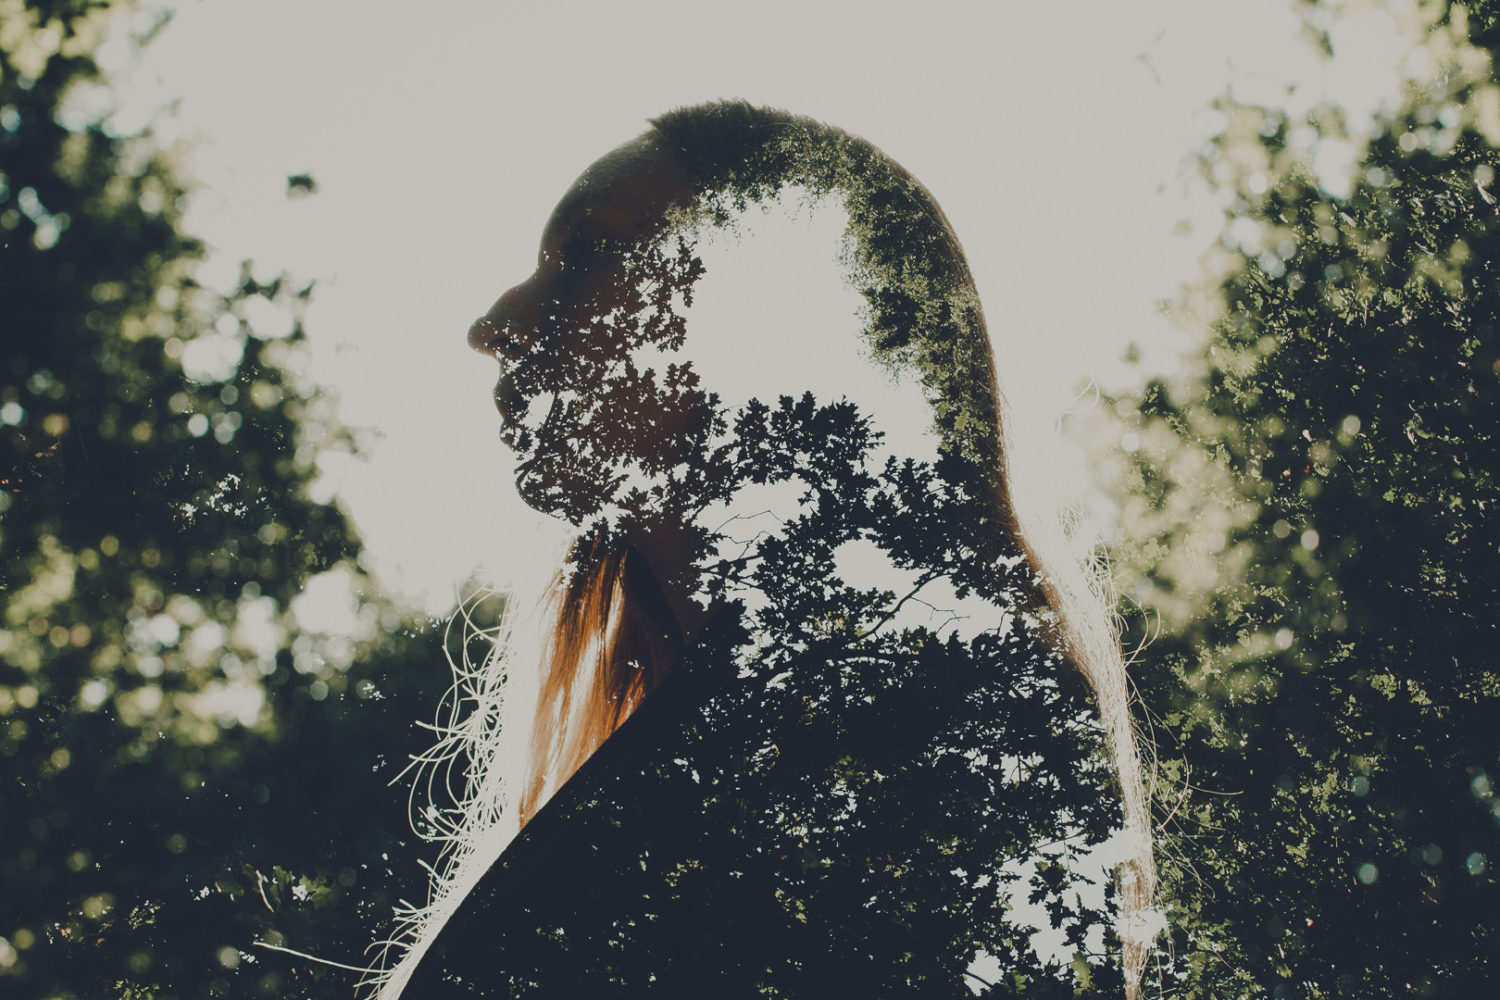 How to create surreal double-exposure photos